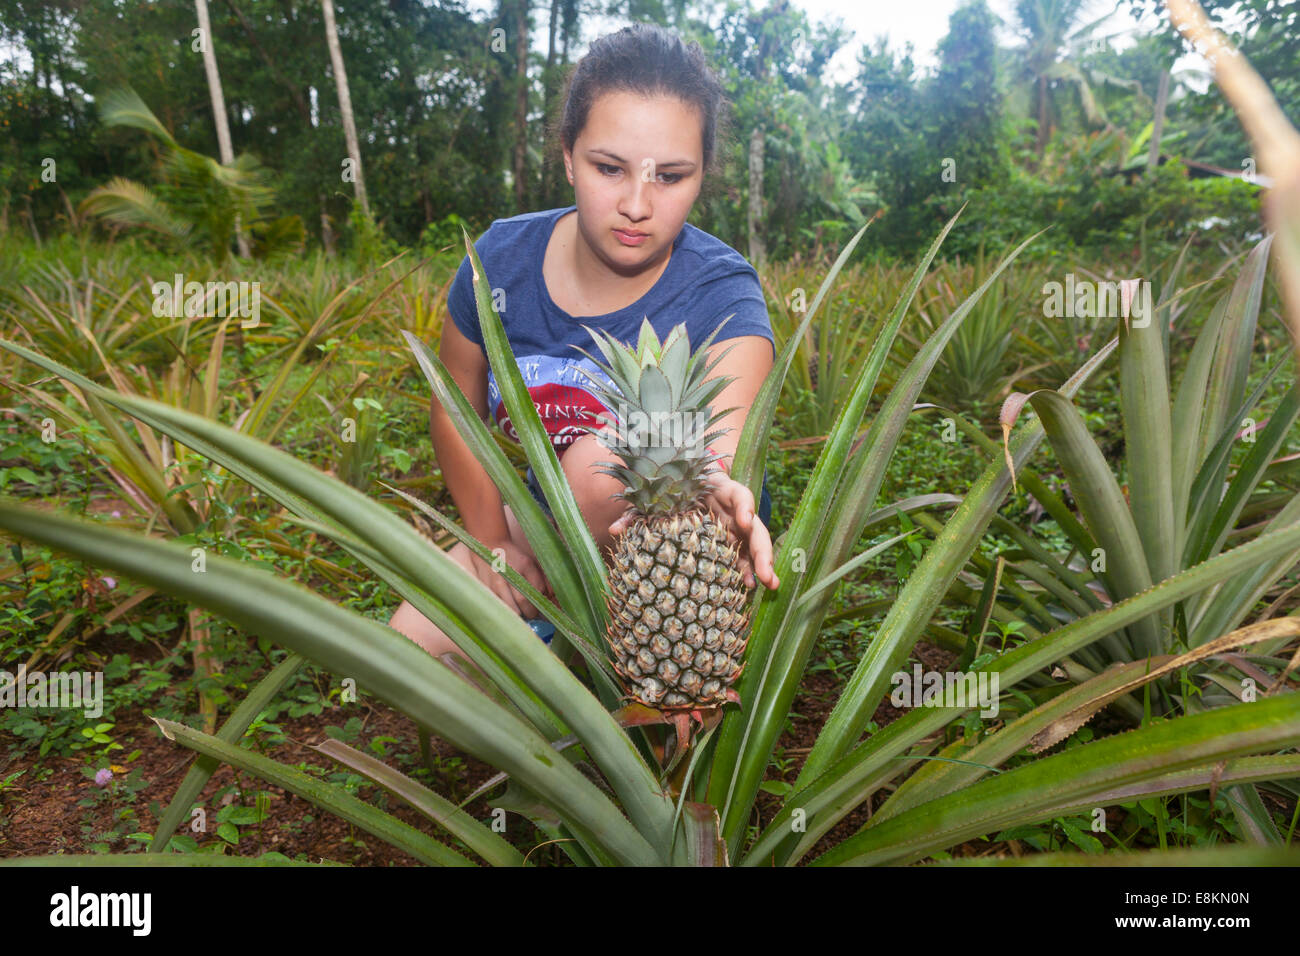 Girl, about 16 years, reaching for a Pineapple (Ananas comosus), plant, Western Province, Sri Lanka - Stock Image